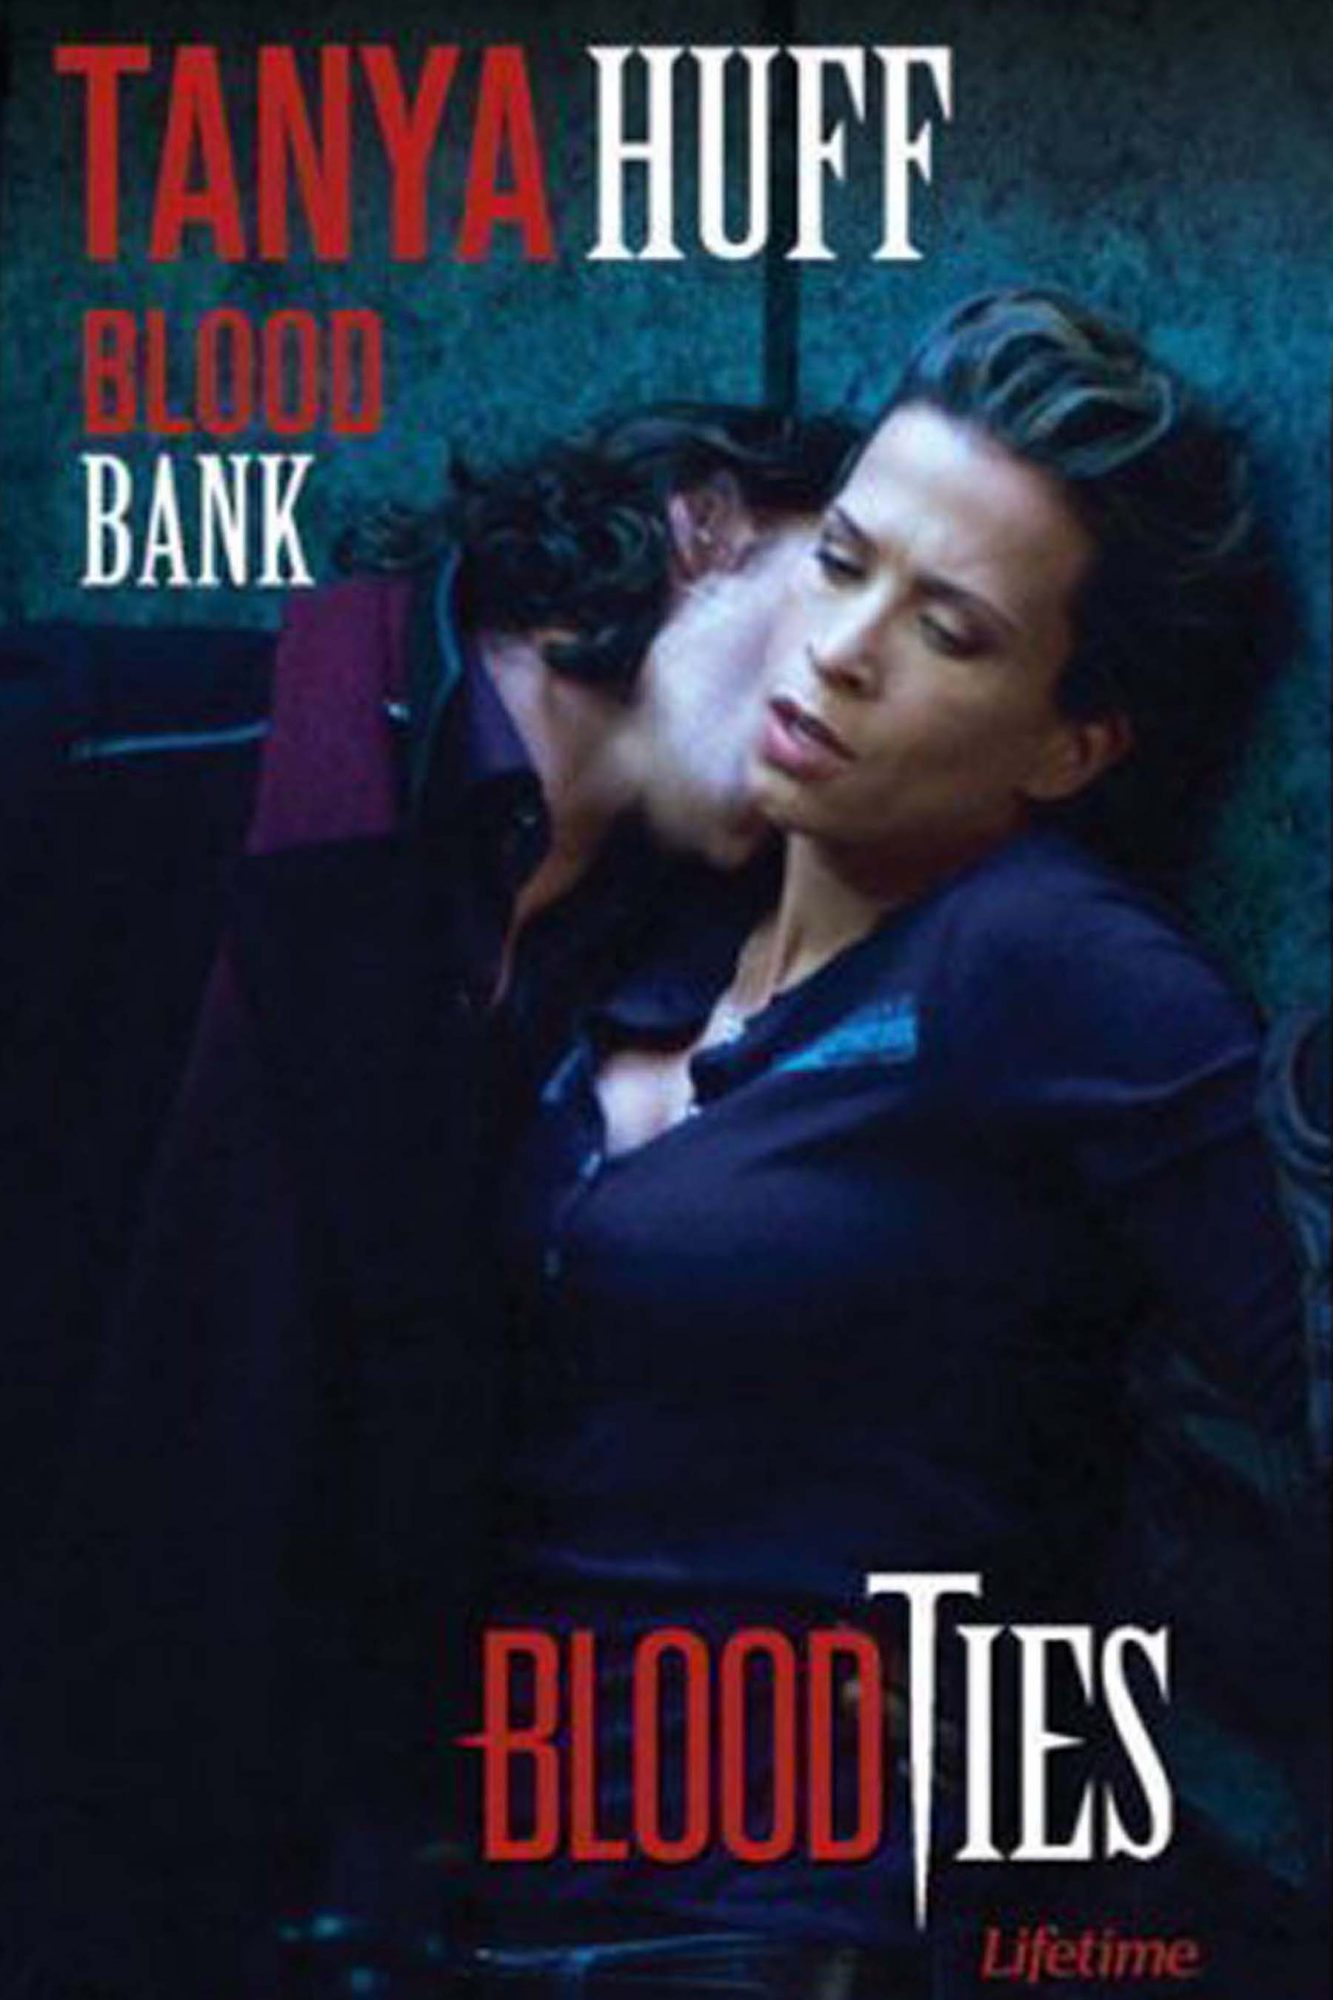 Blood Bank (Blood Ties) by Huff, Tanya (2008) Publisher: Daw Books